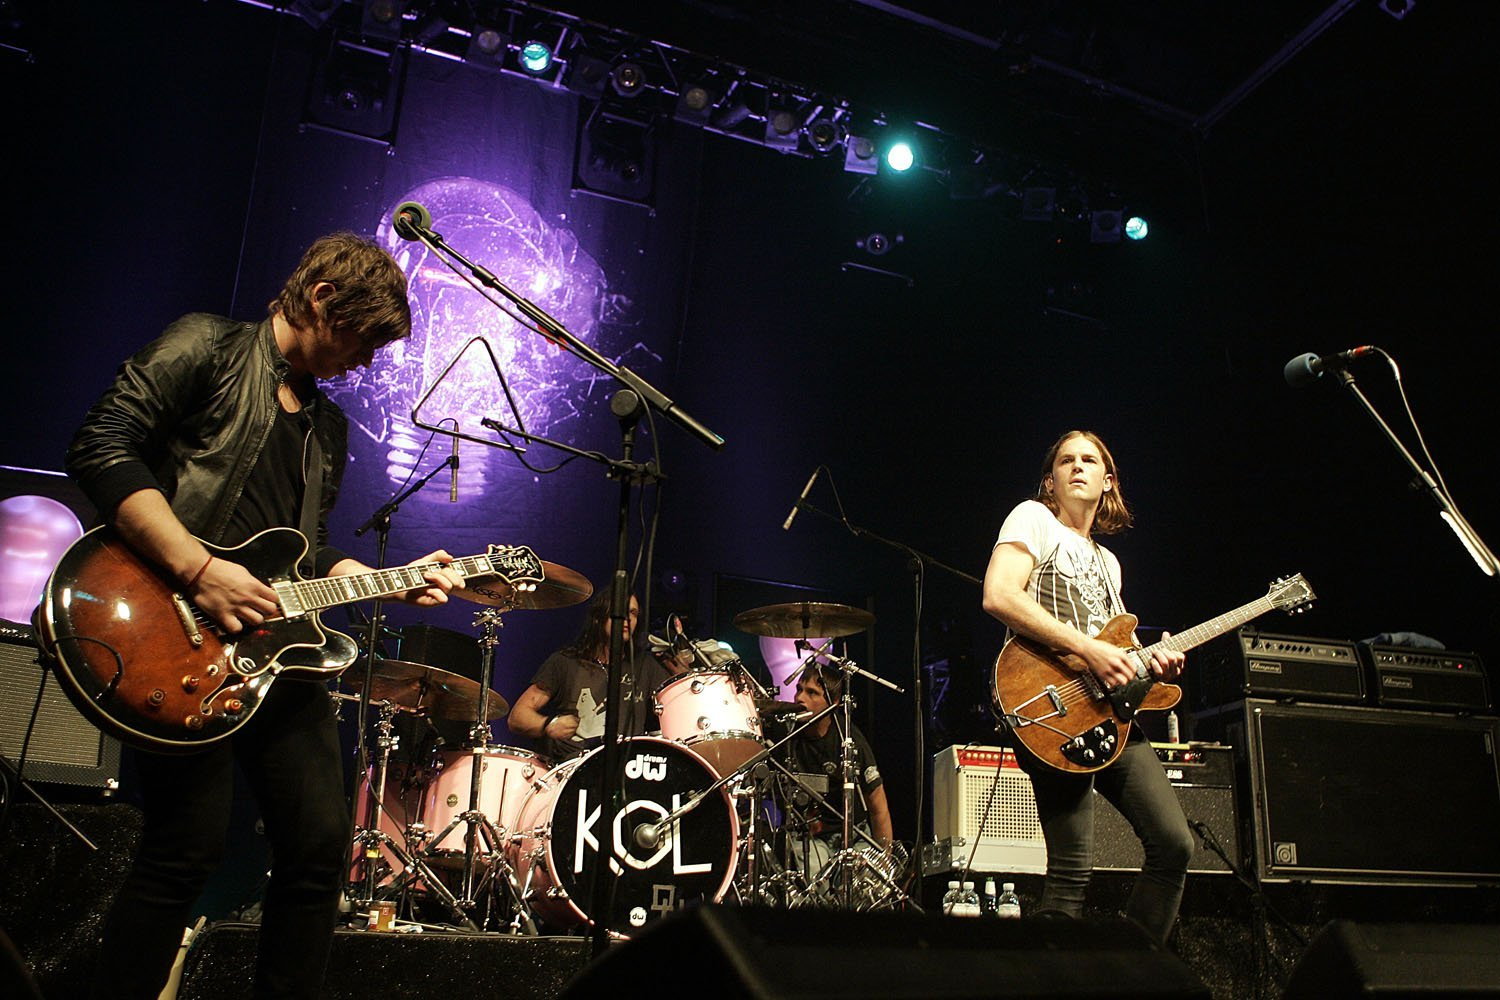 Kings of Leon @ Plymouth Pavilions 15th April 2007 - www.leapimages.co.uk